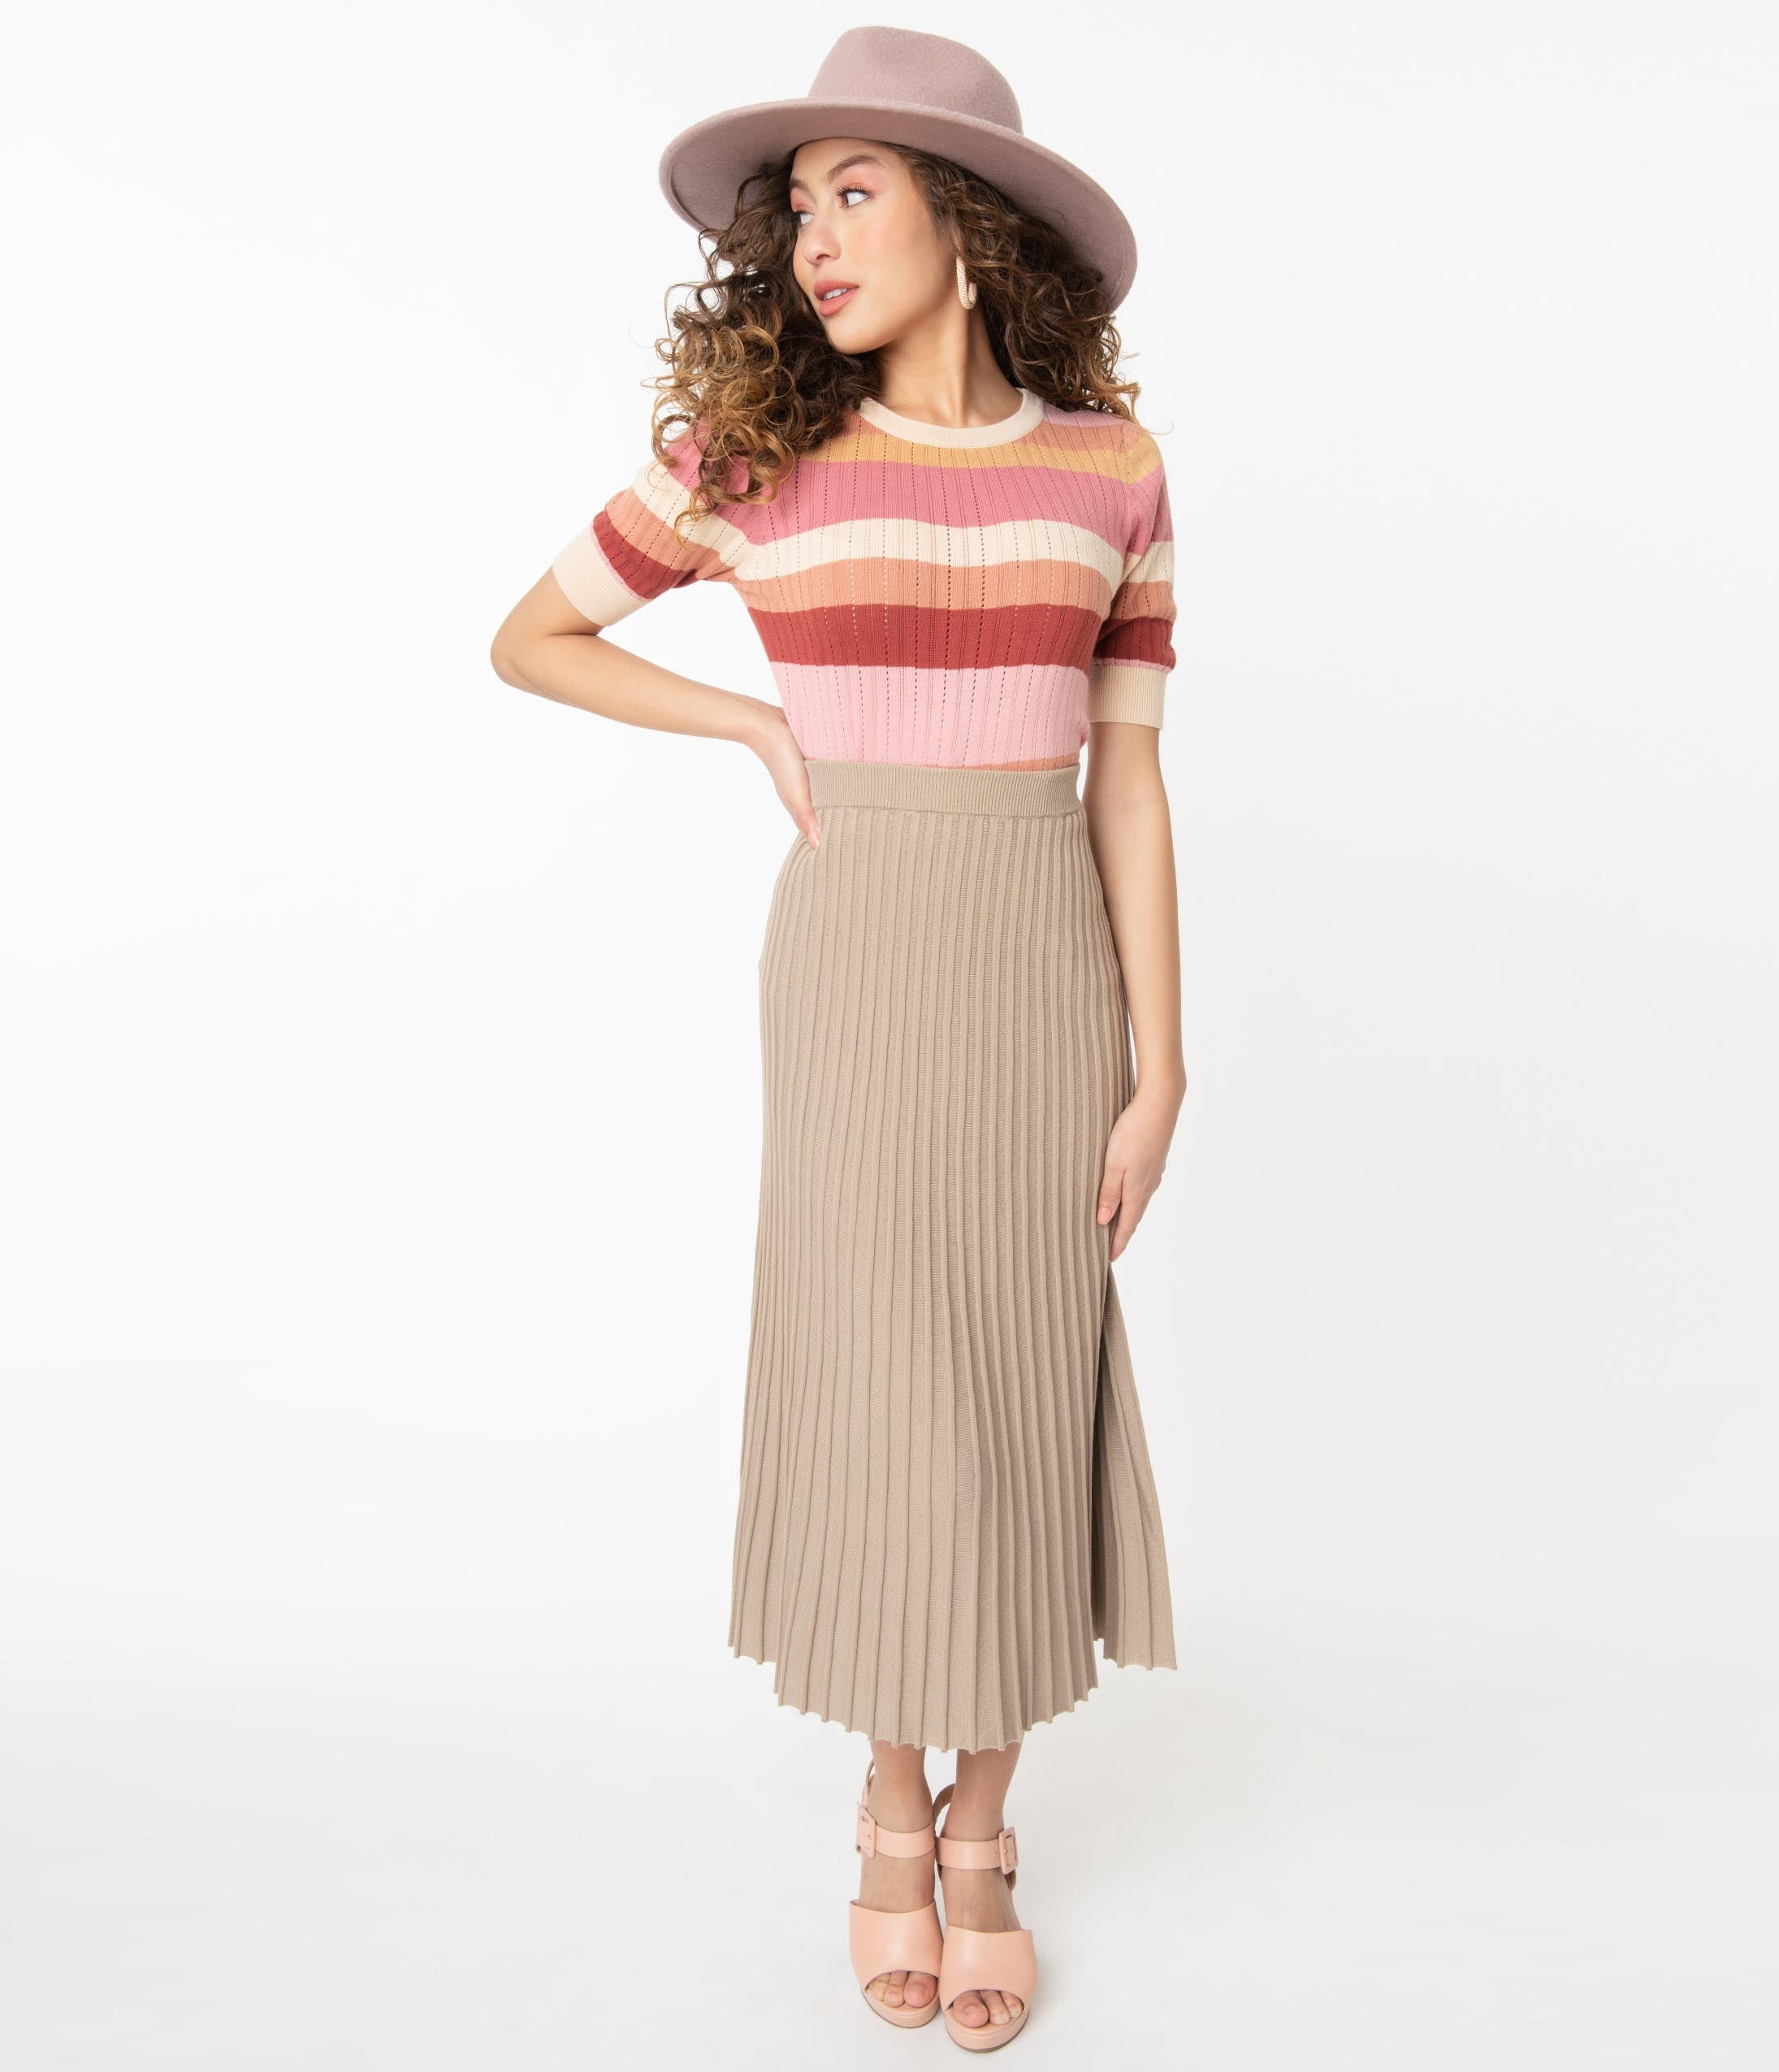 70s Clothes | Hippie Clothes & Outfits Vintage Style Taupe Pleated Knit Midi Skirt $58.00 AT vintagedancer.com